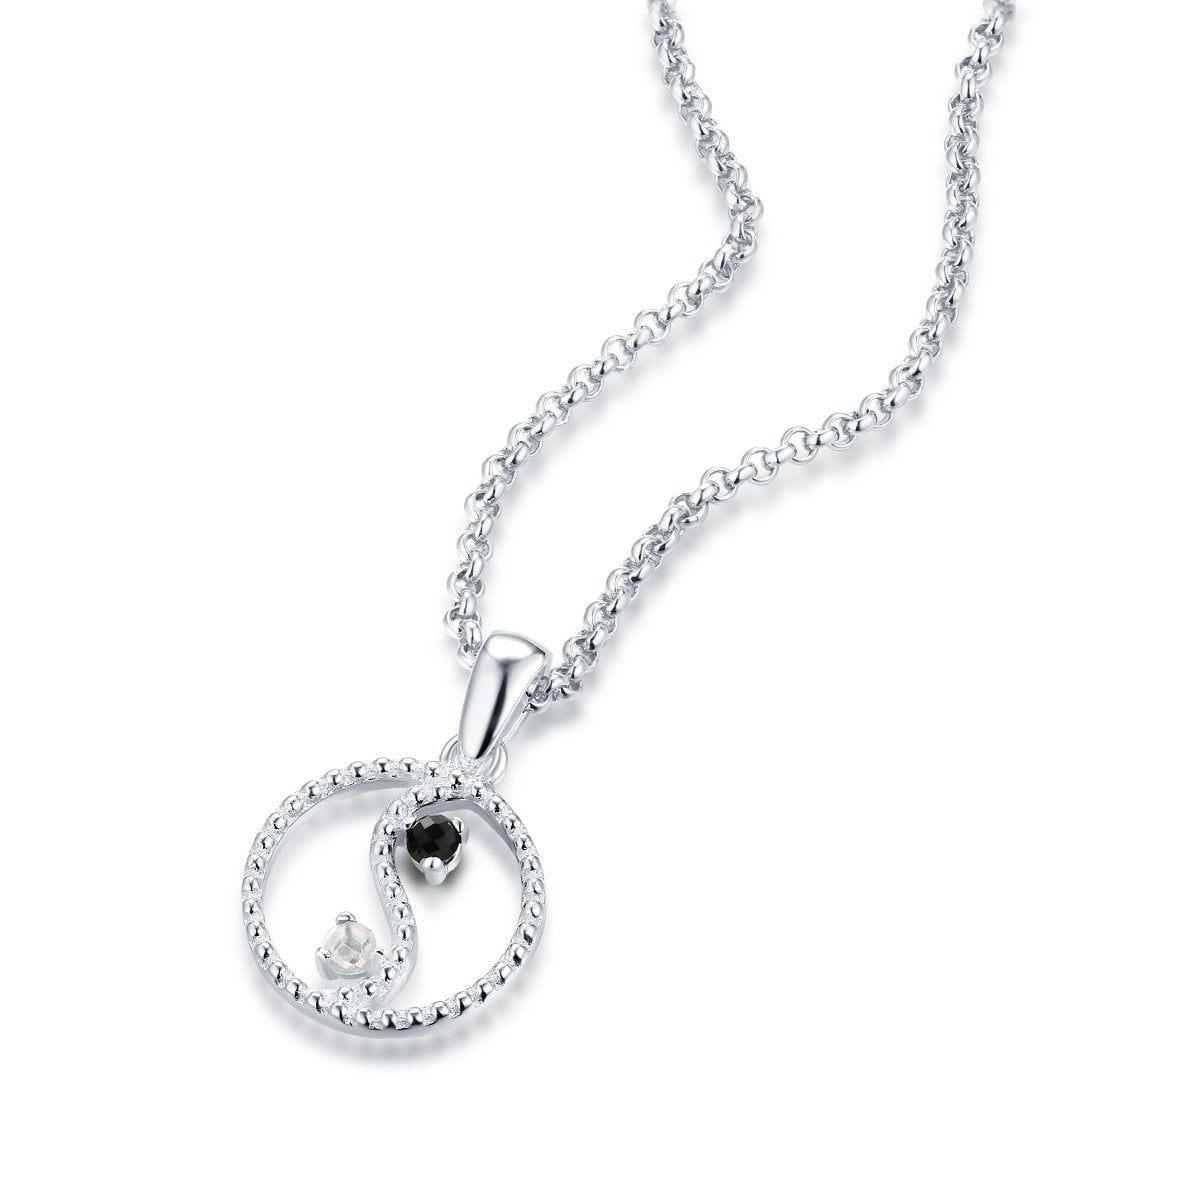 YIN & YANG FINE NECKLACE - STERLING SILVER PLATED